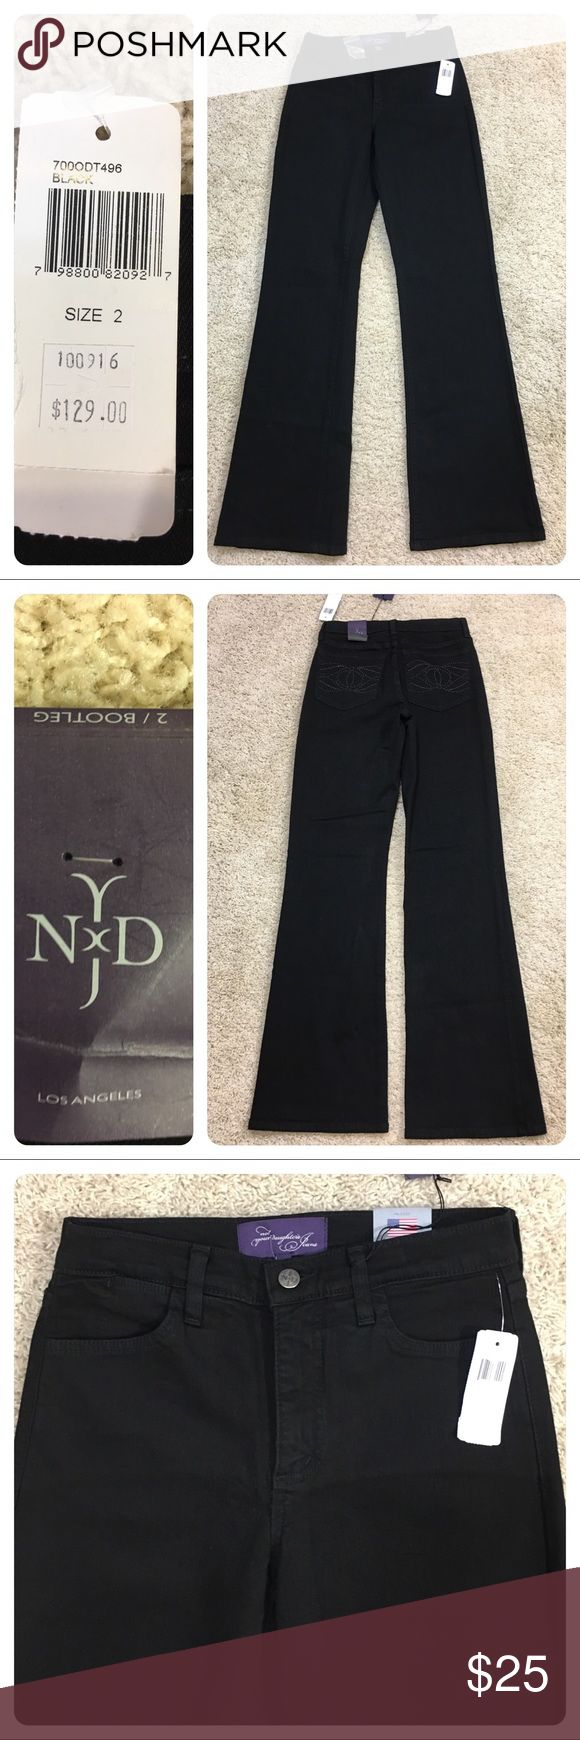 NWT! NYDJ black bootcut jeans New with tags. Not Your Daughters Jeans bootcut black jeans. Great lift tick technology. Super flattering. Tiny snag on back bottom of jeans. NYDJ Jeans Boot Cut